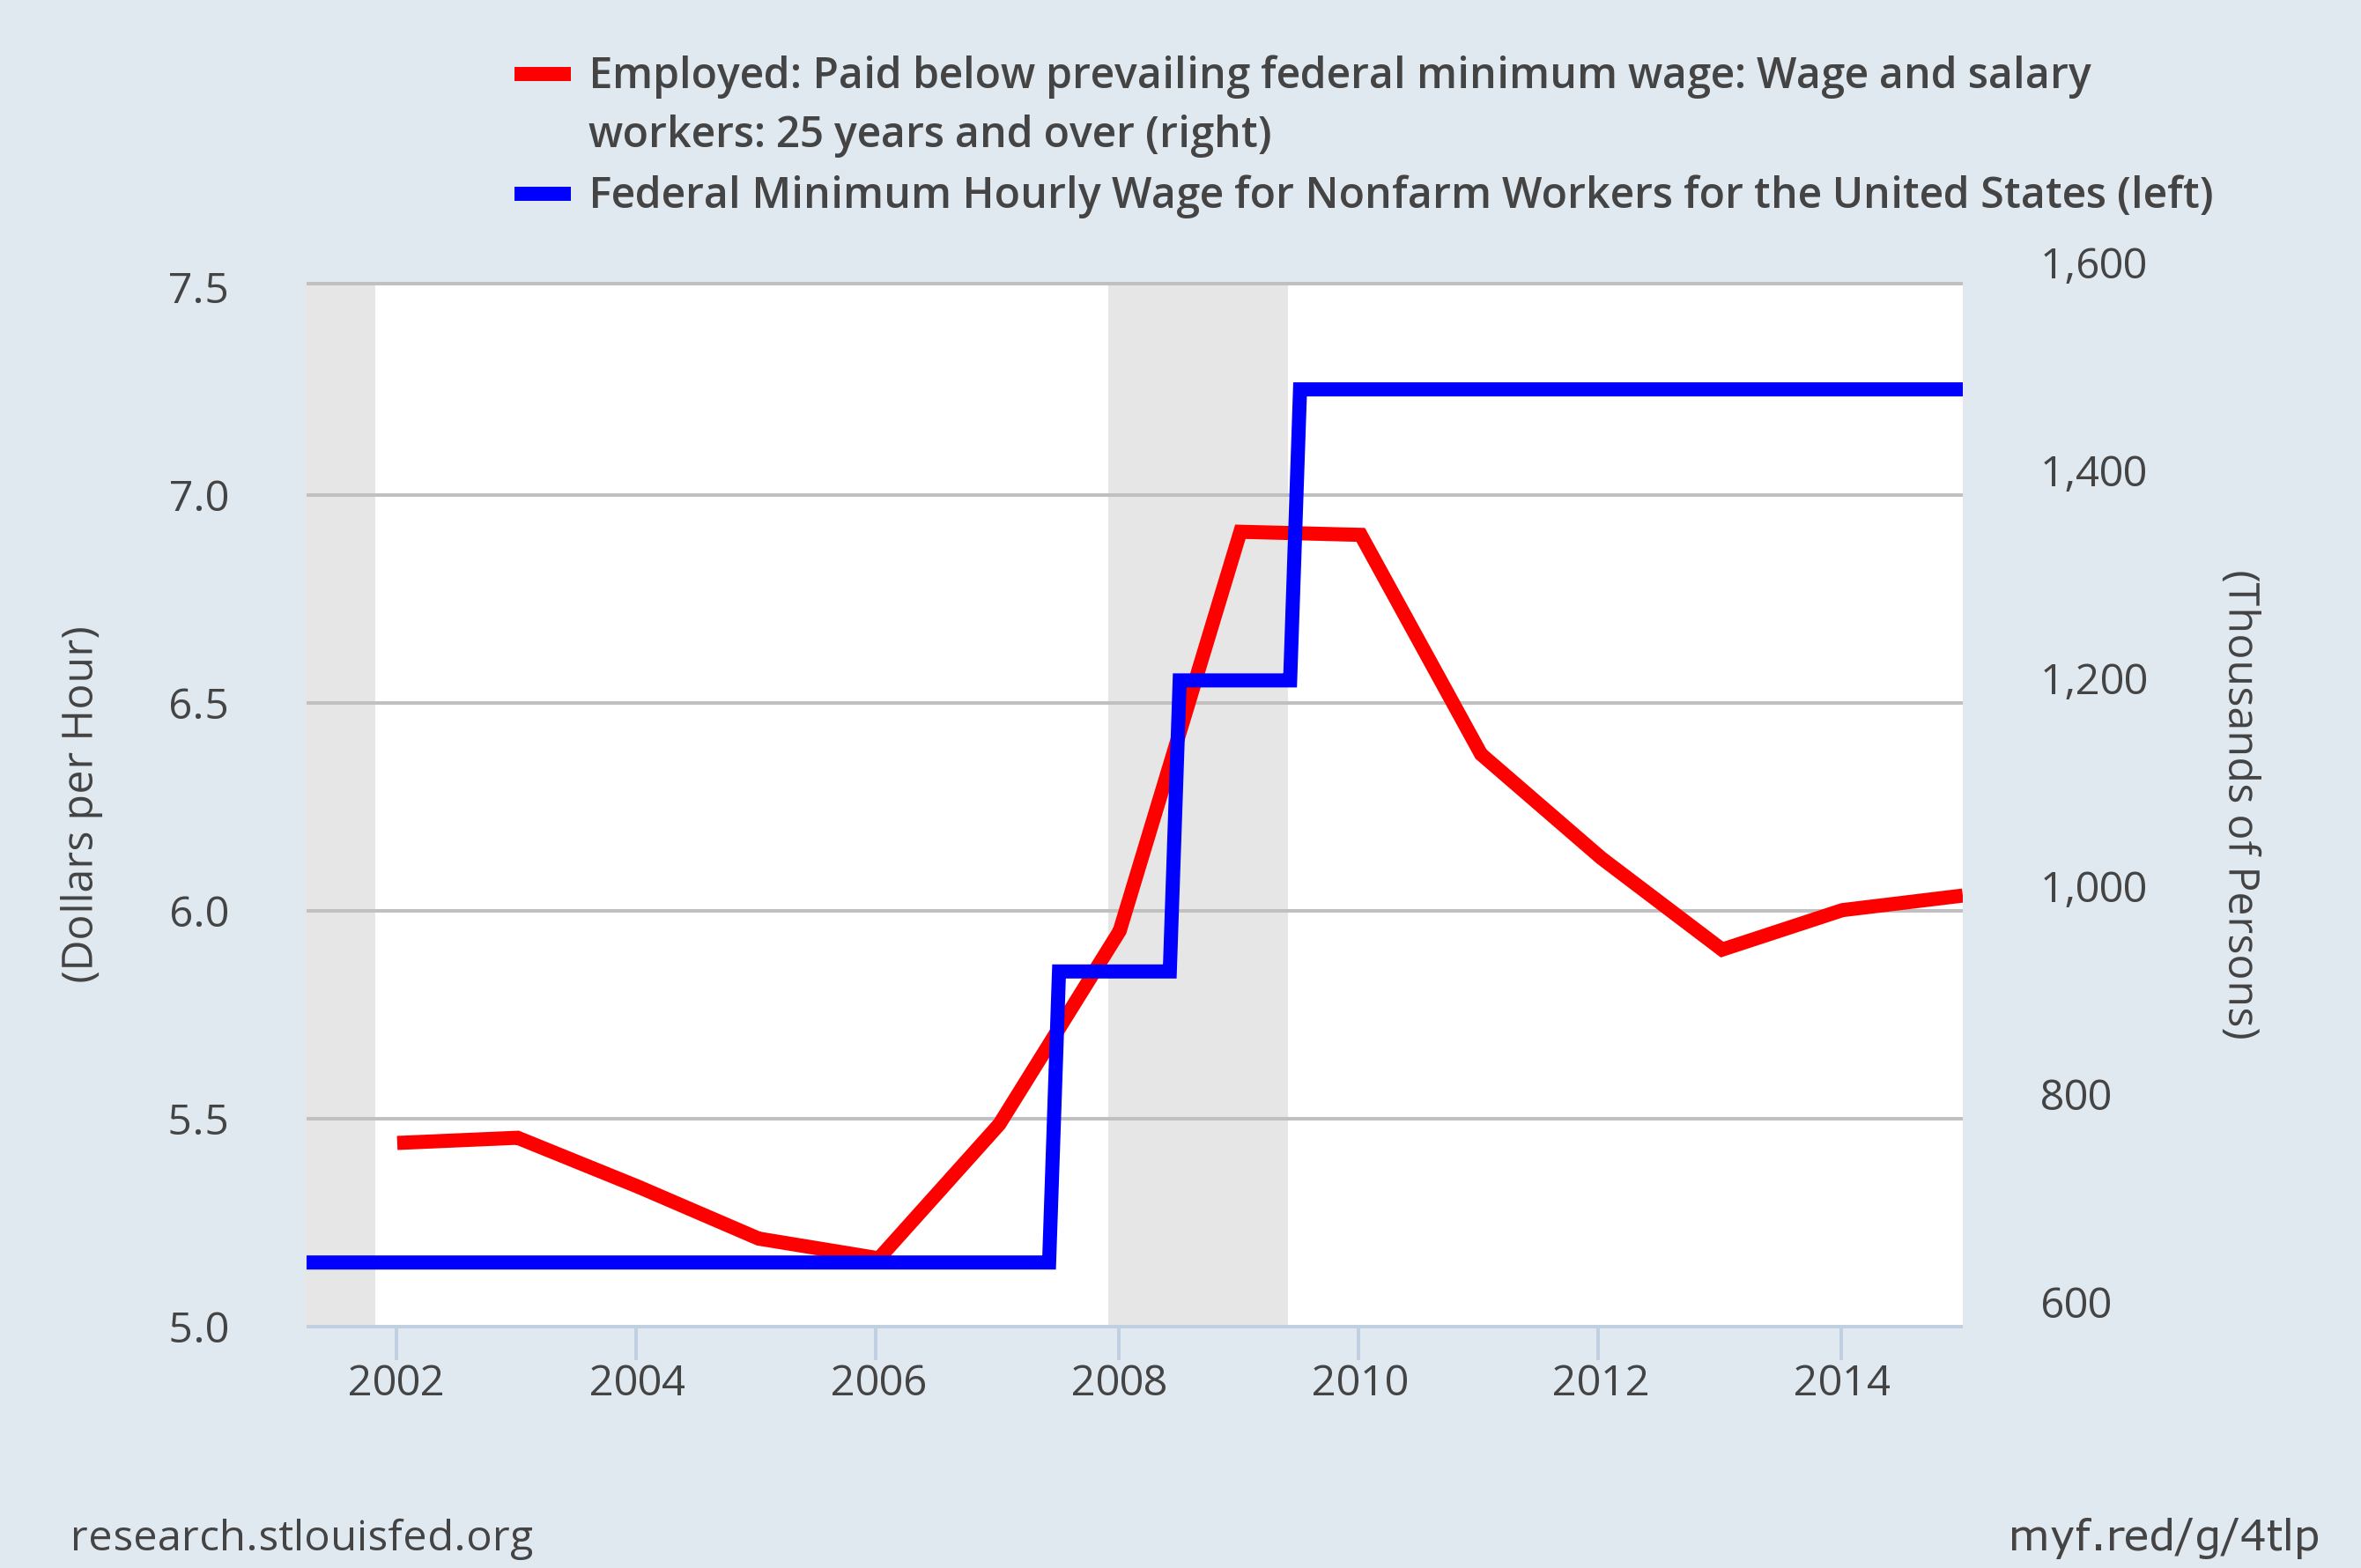 more were paid less than min when min wage went up